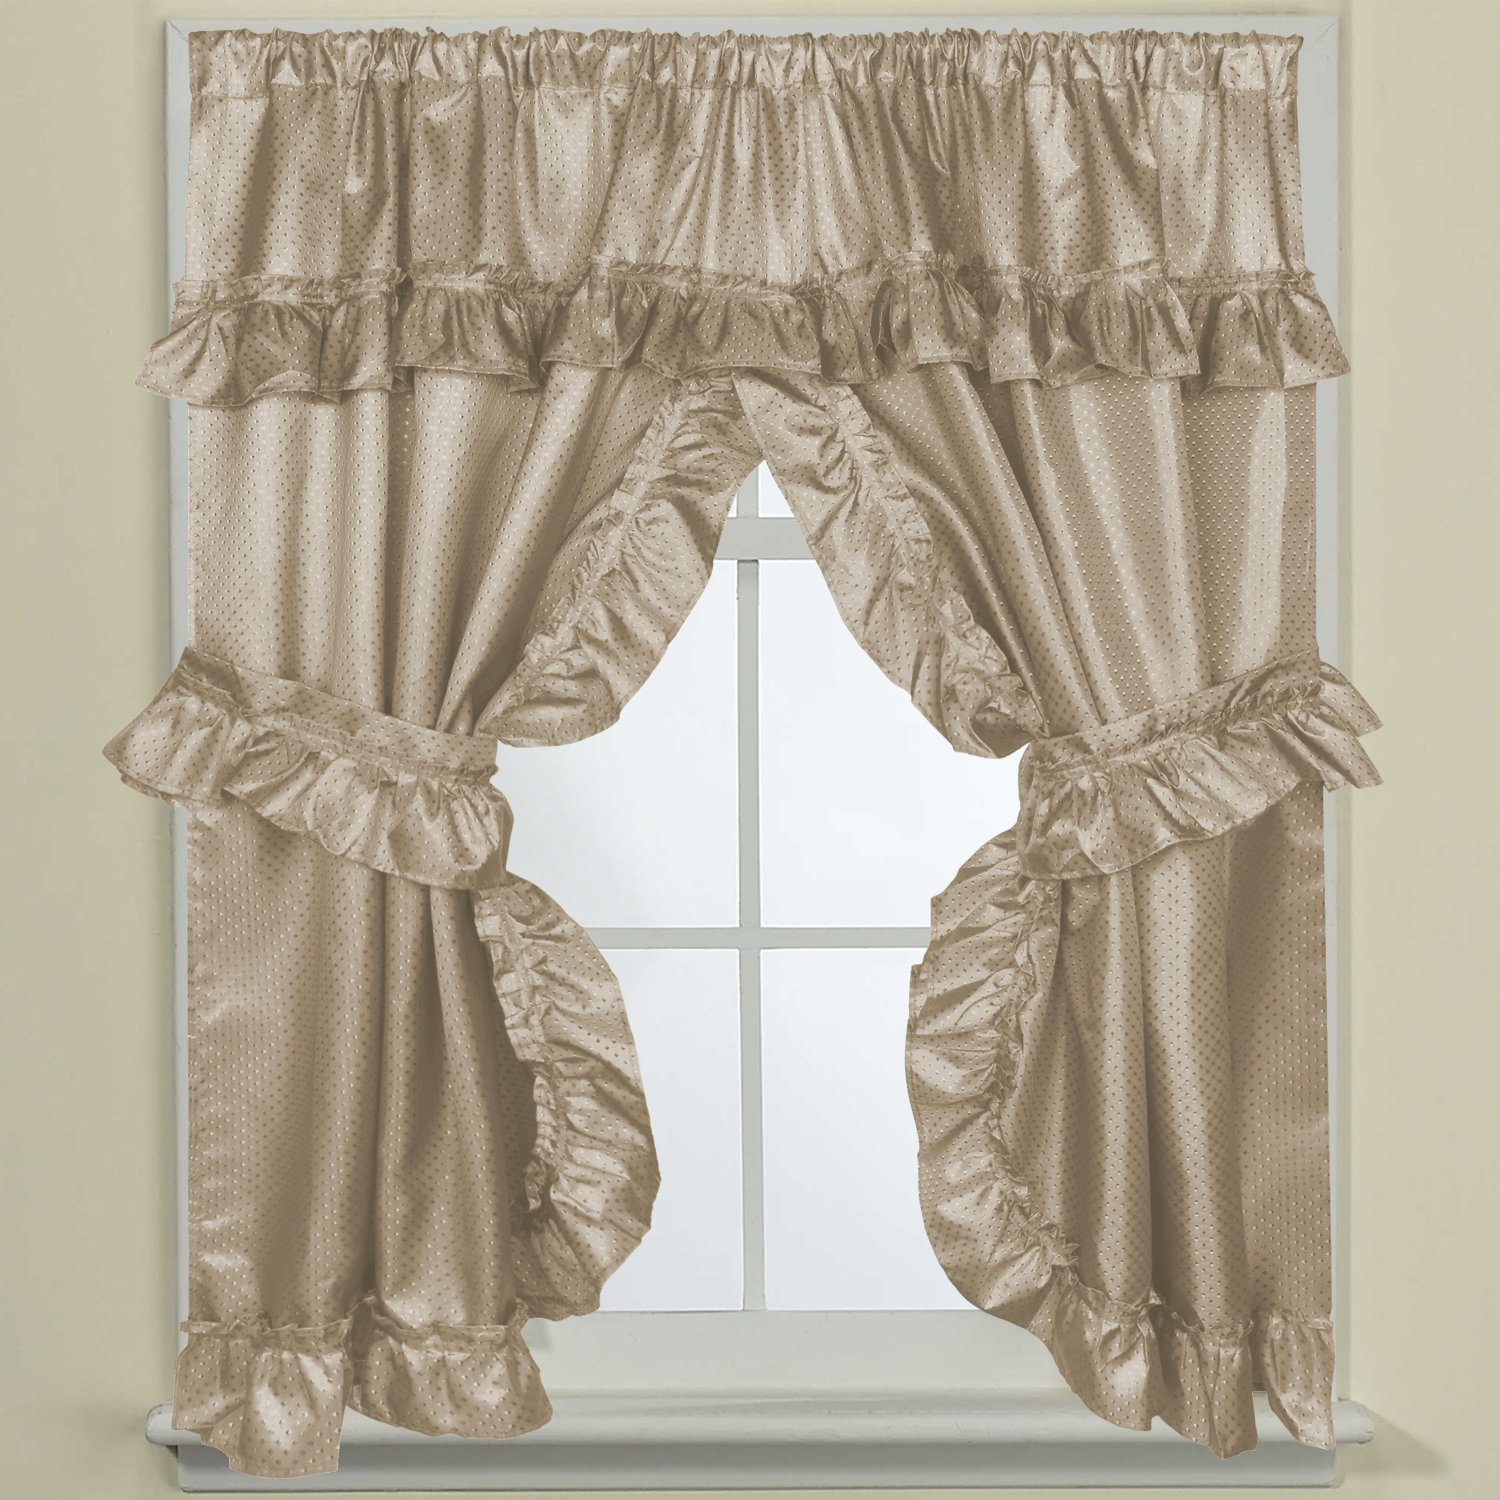 Sweet Home Collection Fabric Bathroom Window Curtain 70'' x 45'' Hotel Quality Treatment Set of Two Durable Panels with Pair of Tiebacks, Linen